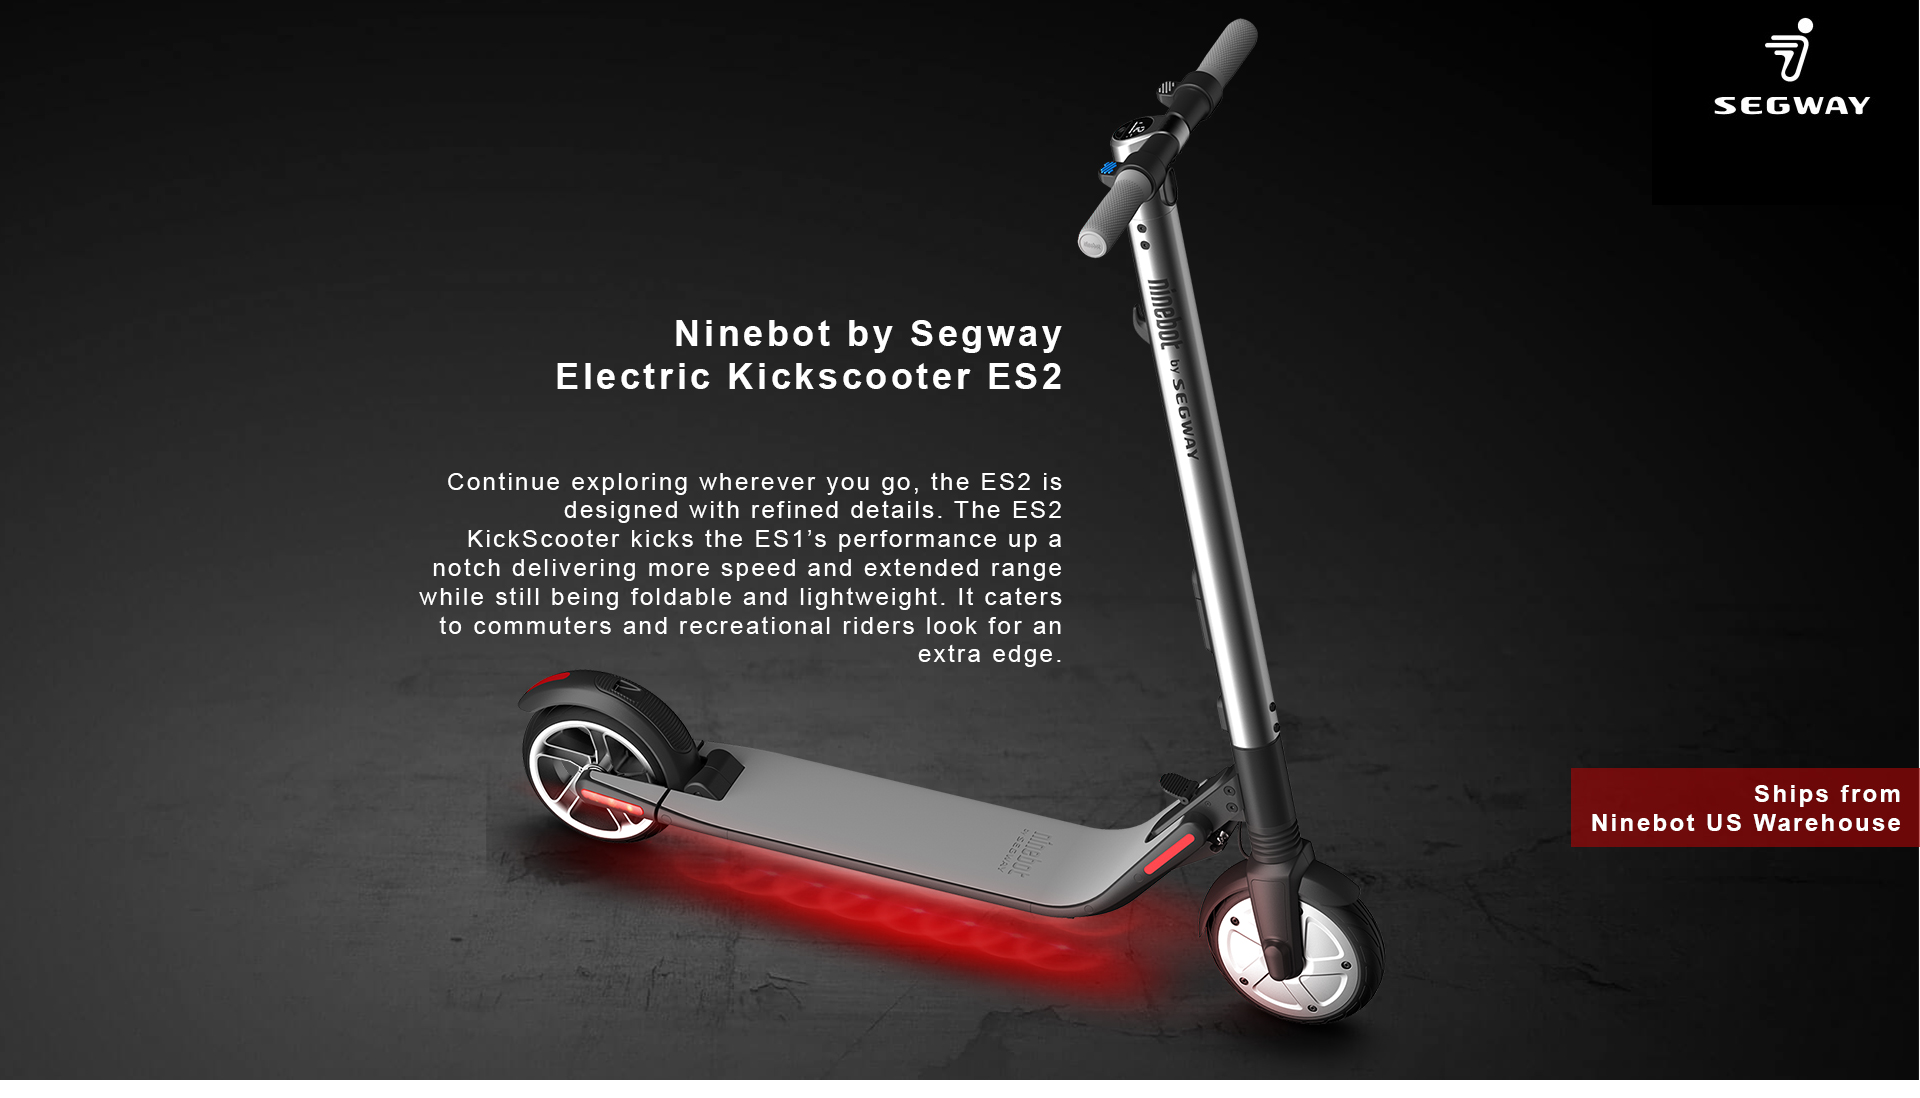 Segway ES2 Kick Scooter - High Performance Foldable Electric Scooter, 15 5  mph, 15 5 mile range - Newegg com